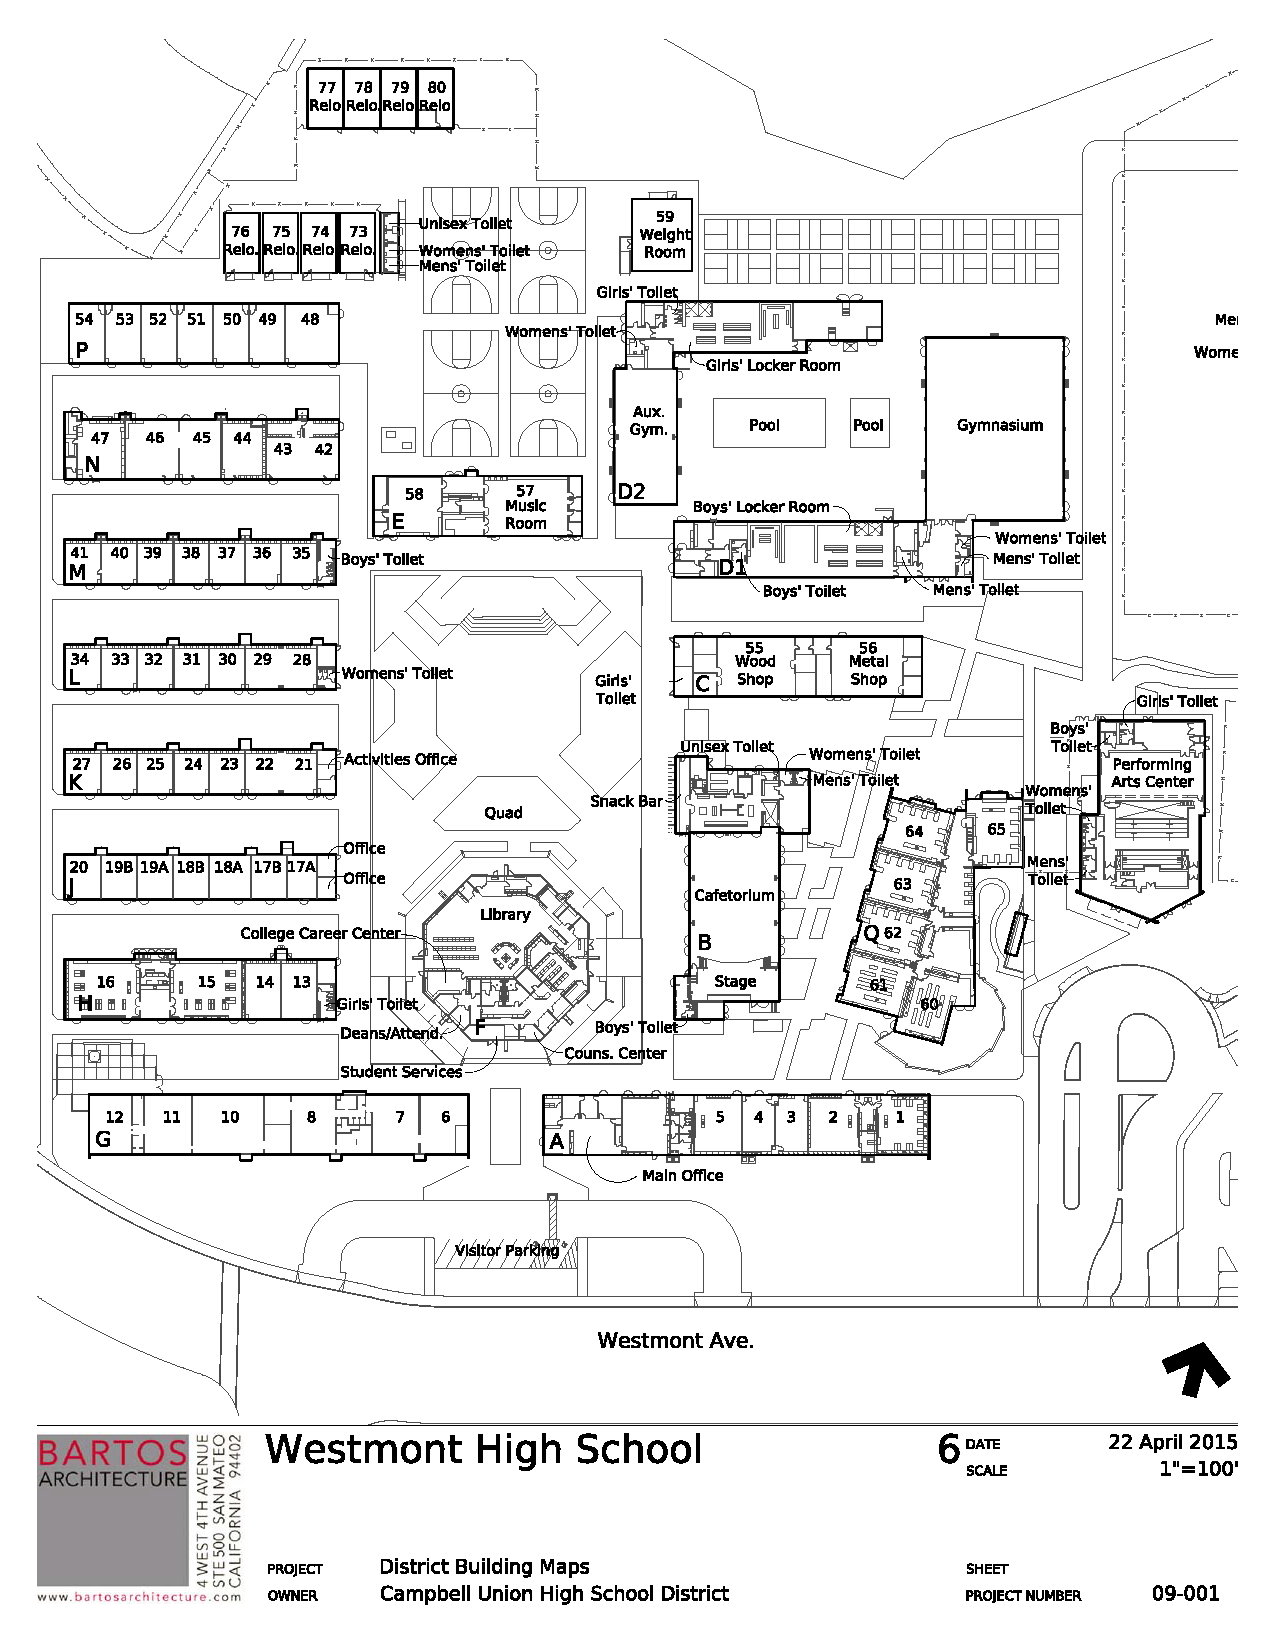 School Campus Map.Campus Map Contact Us Westmont High School